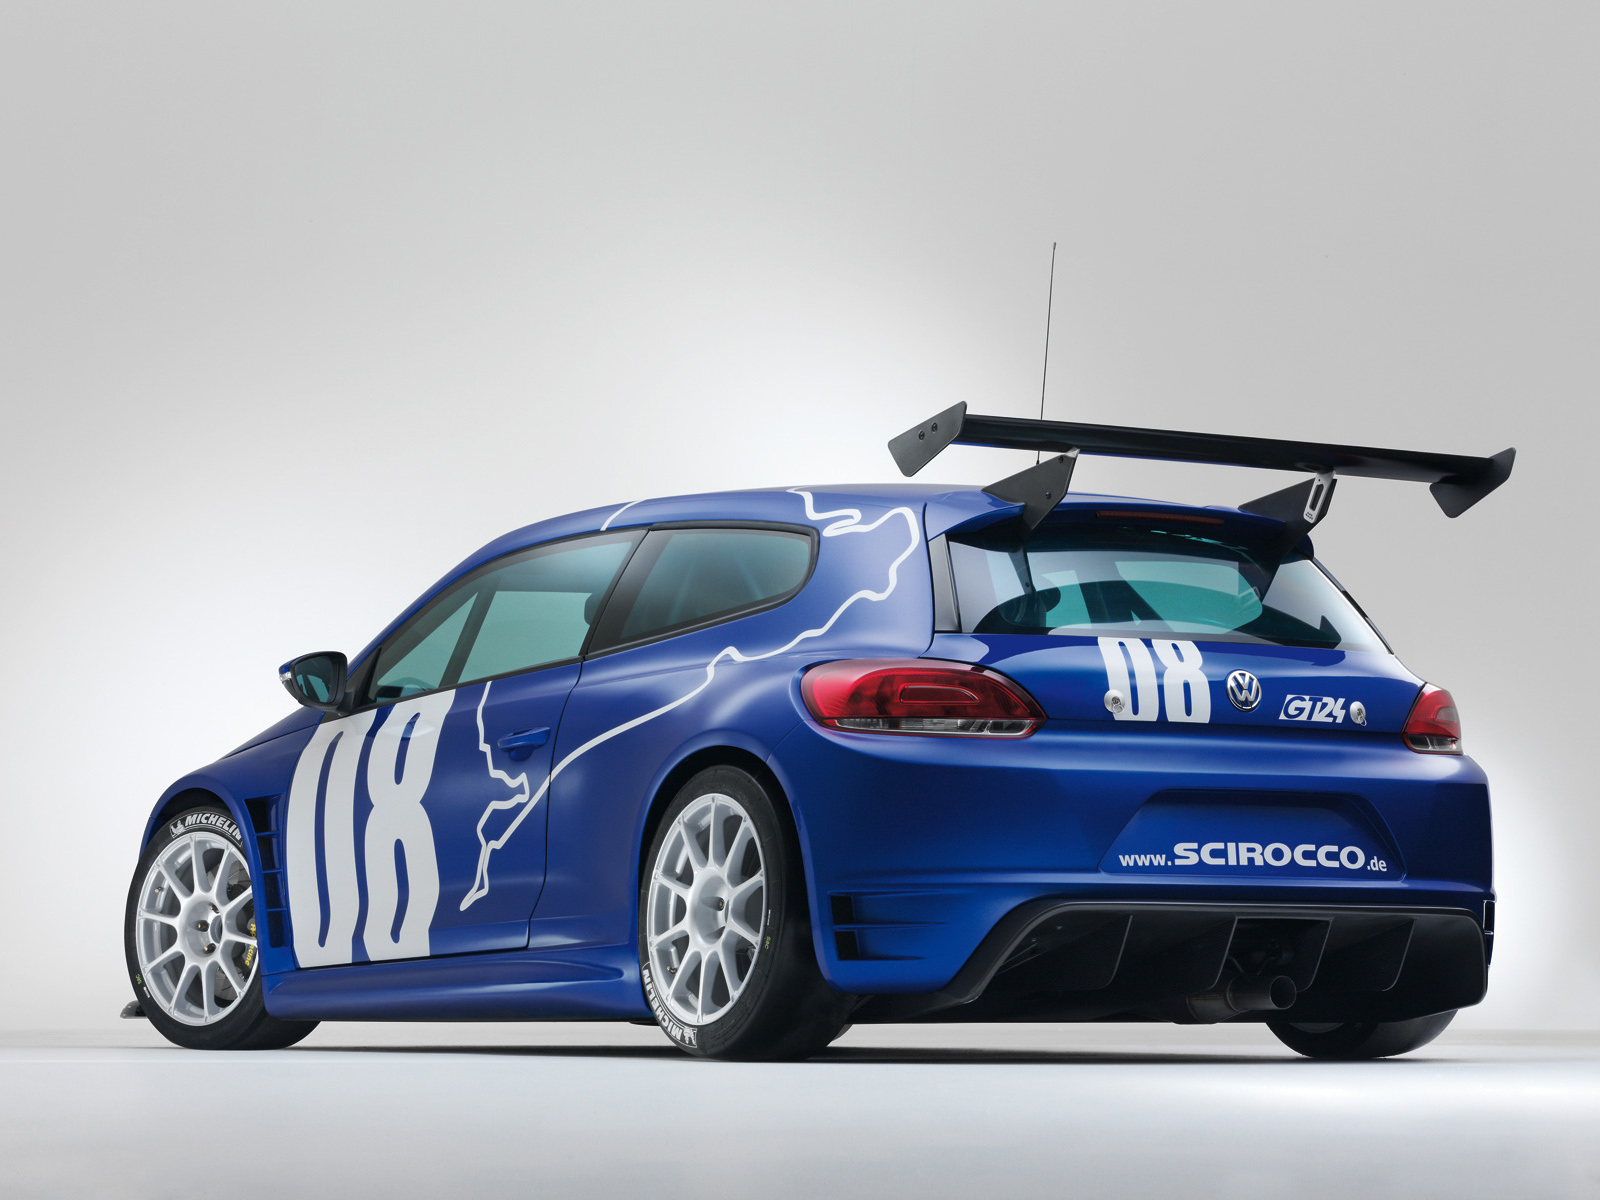 Volkswagen Scirocco GT24 photo 55054